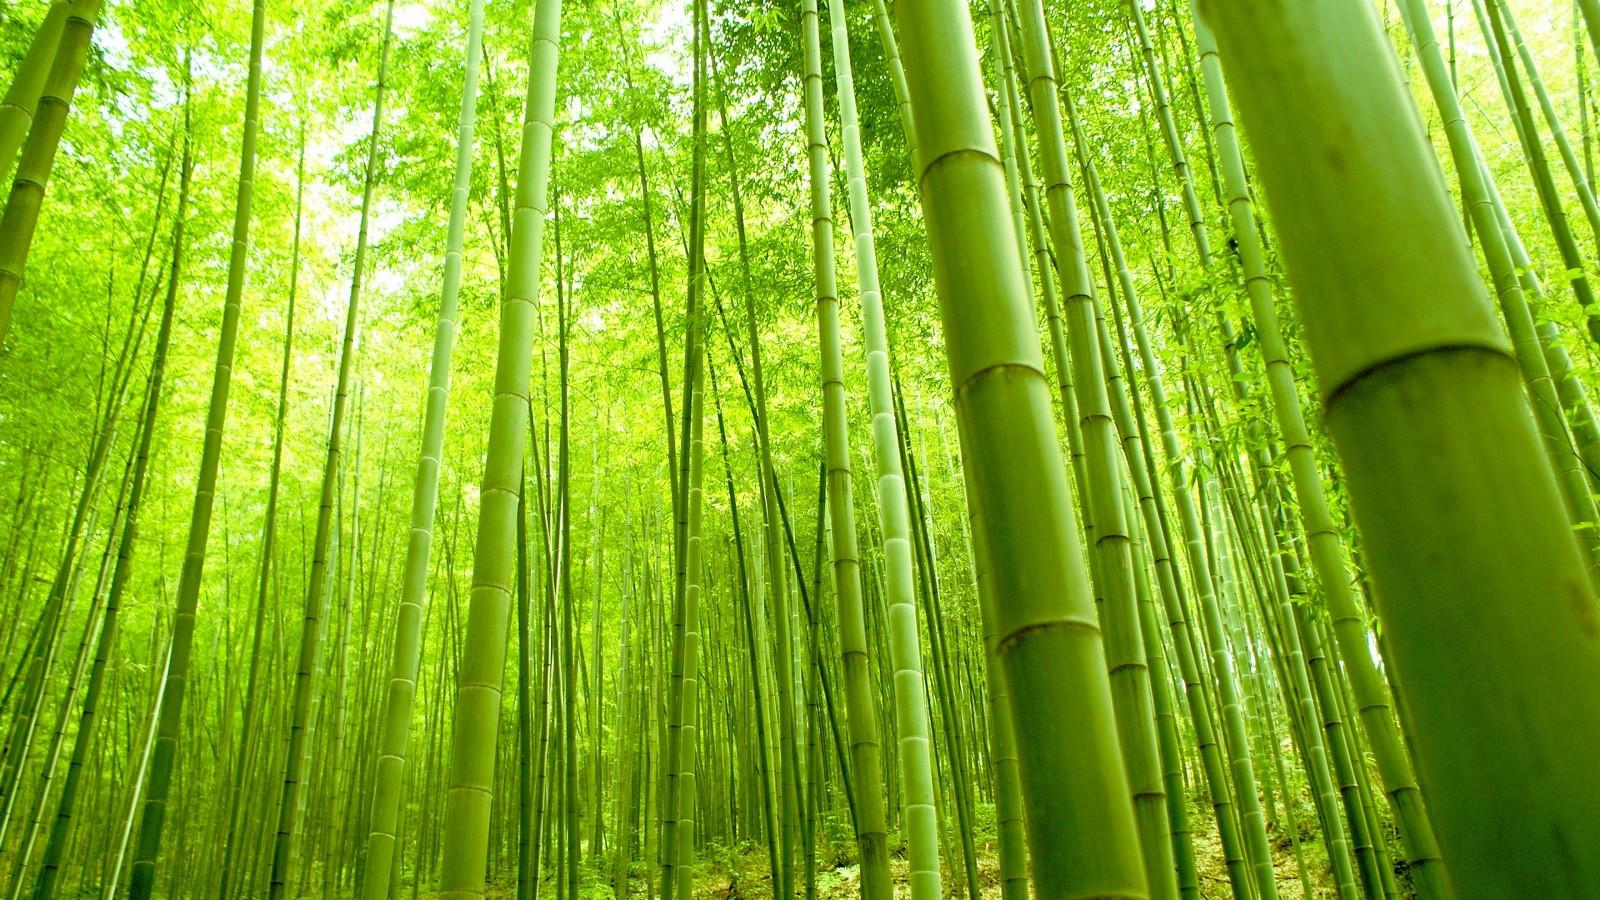 Japan Bamboo forest Wallpapers Magnificent Bamboo forest Japan Puter